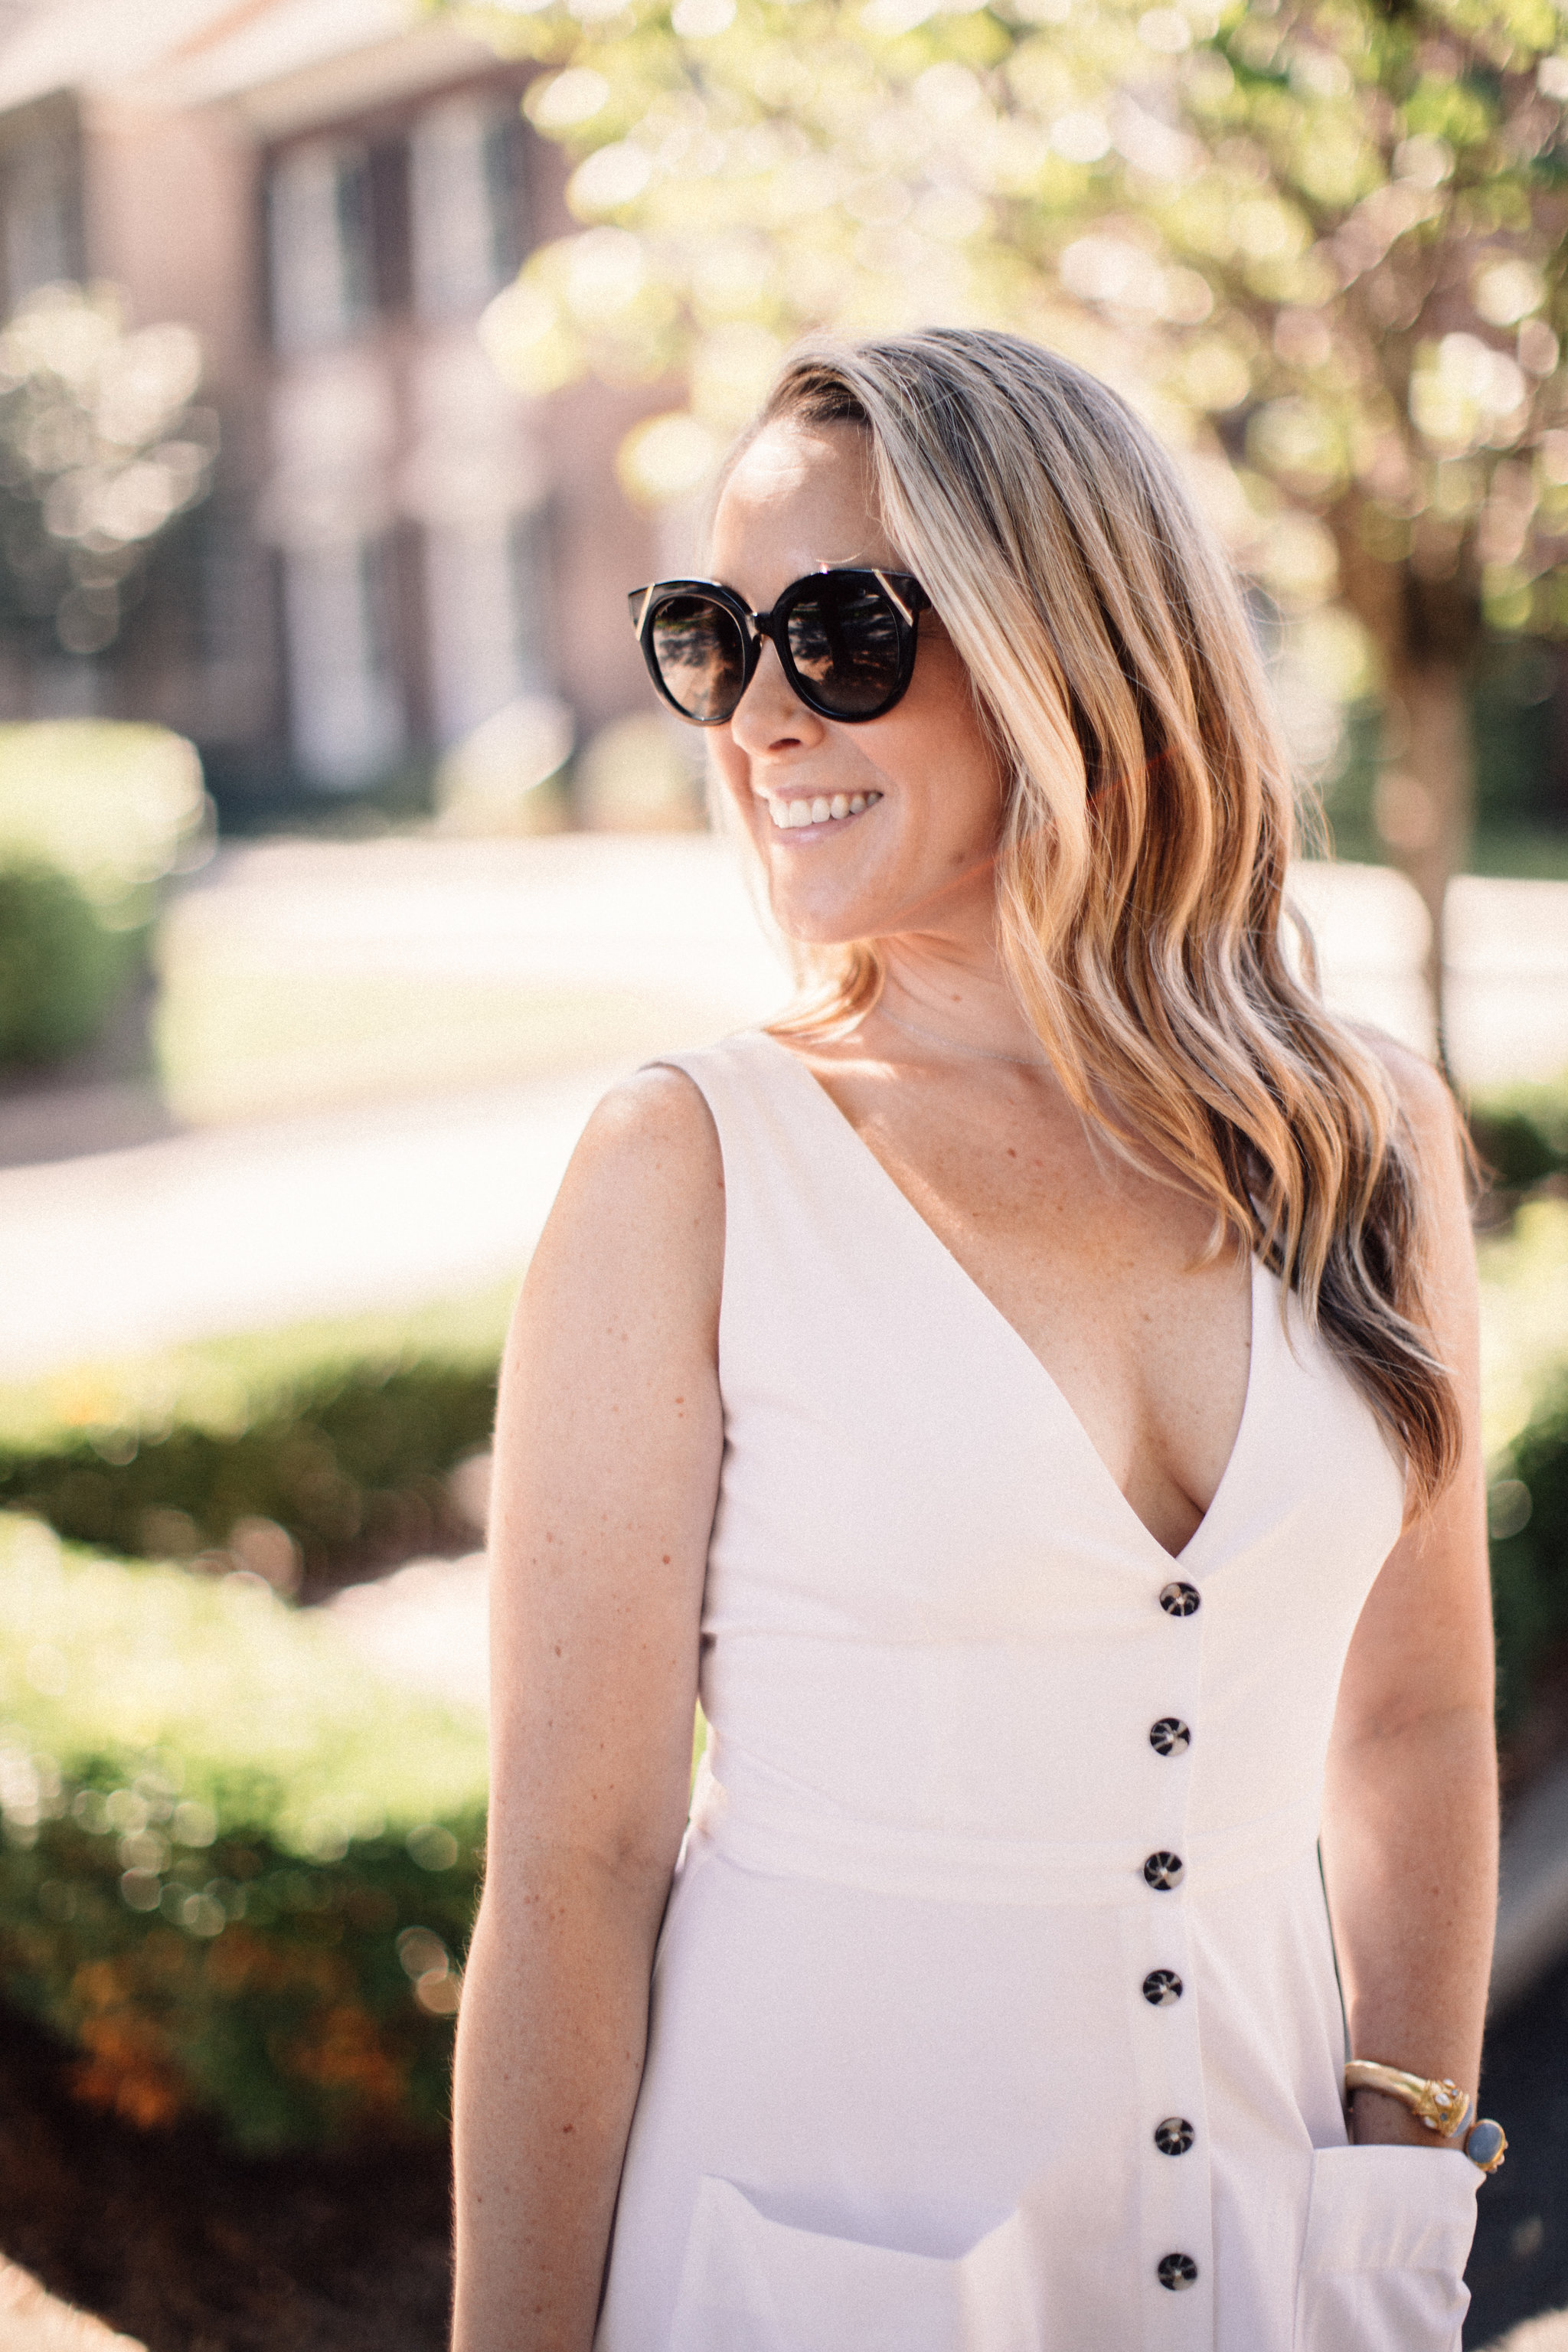 Little White Button Down Dress by NC fashion blogger Every Chic Way - The perfect LWD for the end of summer on ECW today!